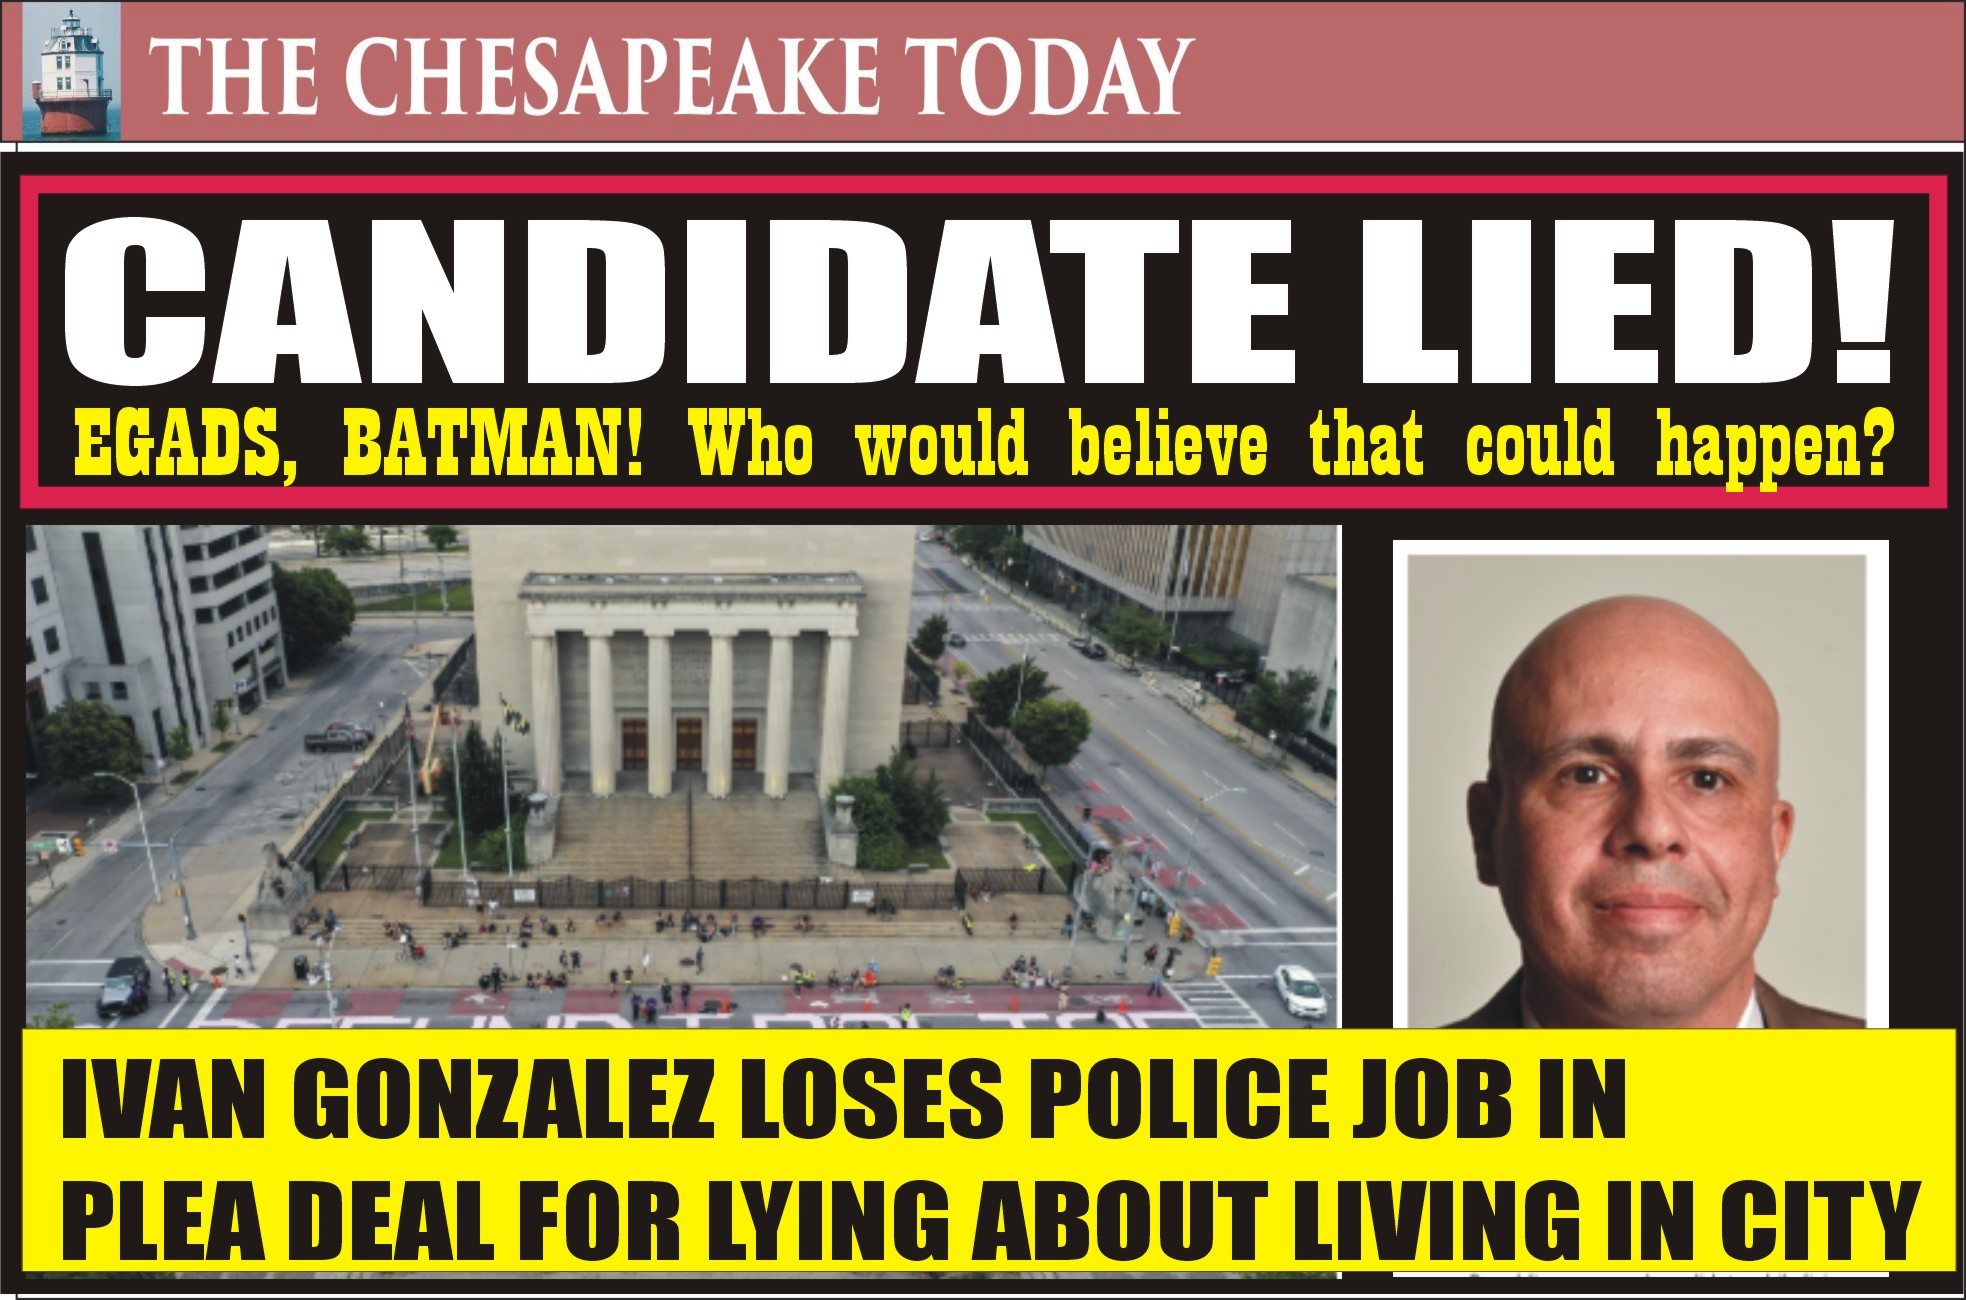 COURT NEWS: Ivan Gonzalez had all the right moves to be elected Baltimore Mayor, first he committed perjury when filing his candidacy papers by lying about living in the city